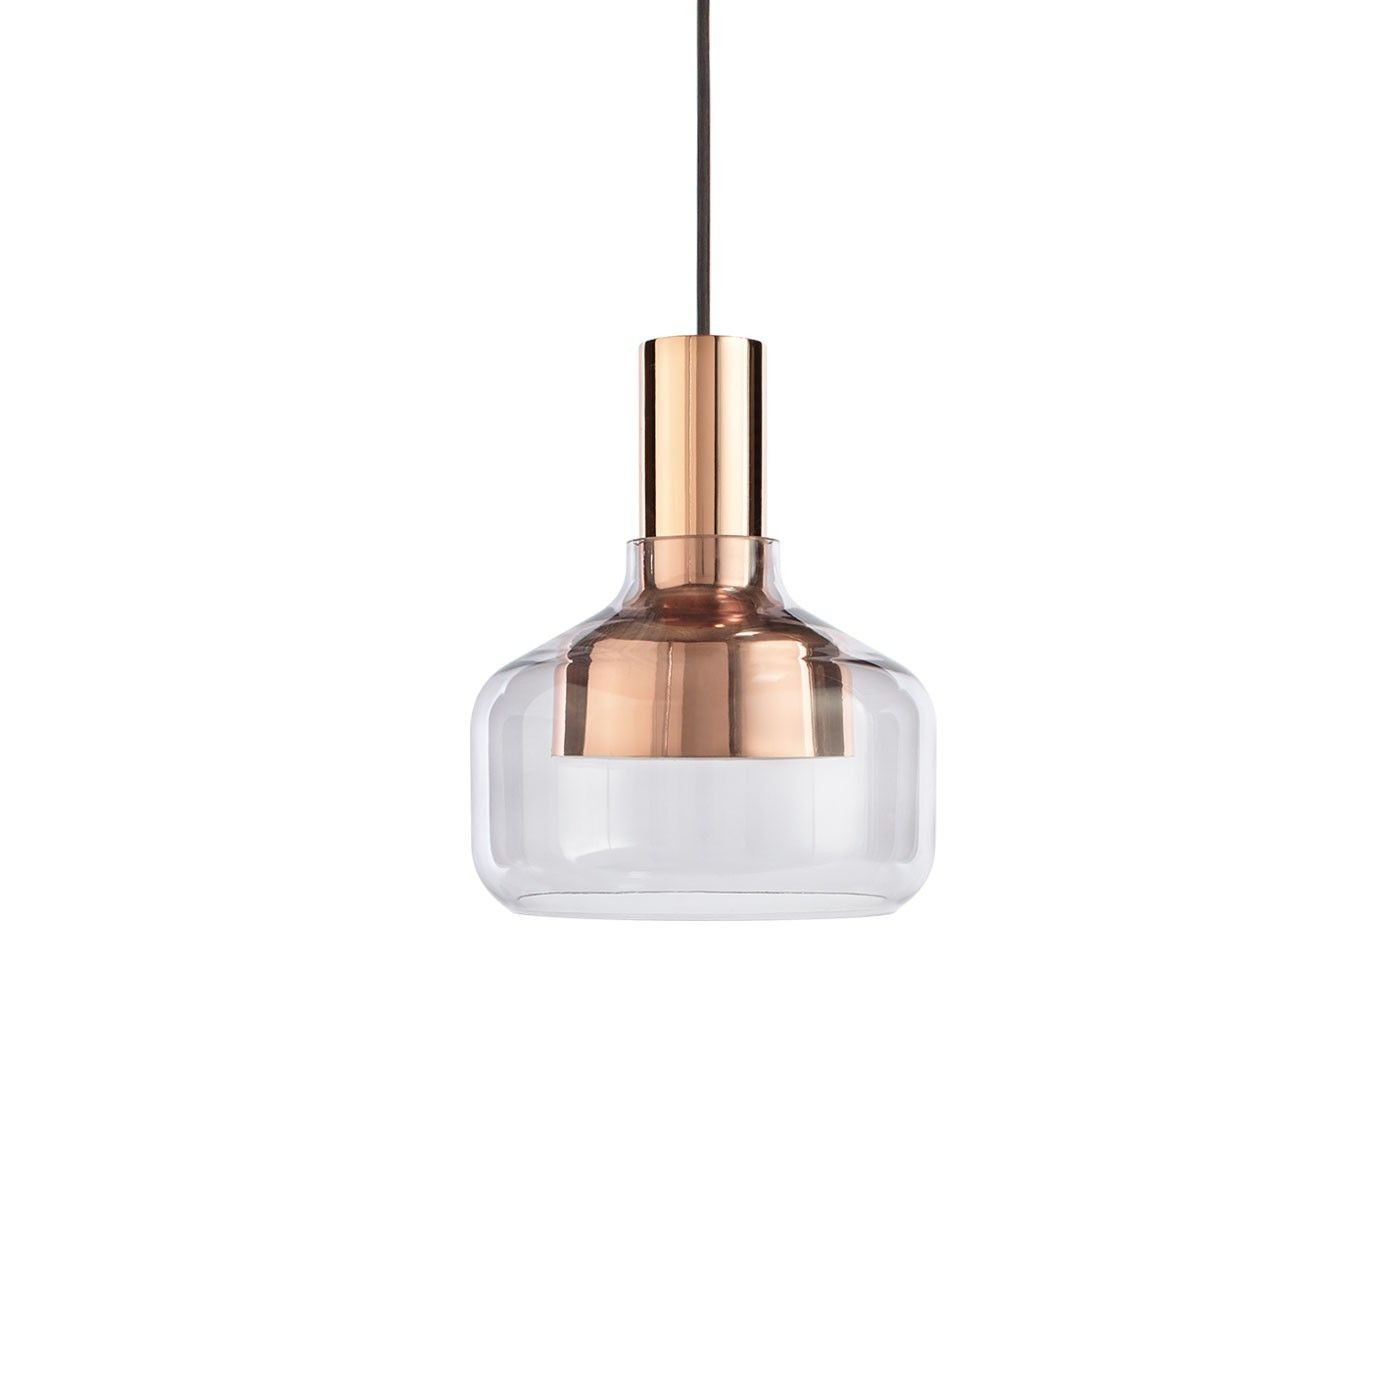 Trace Light Suspended Lights From Sklo: Trace 3 Pendant Light